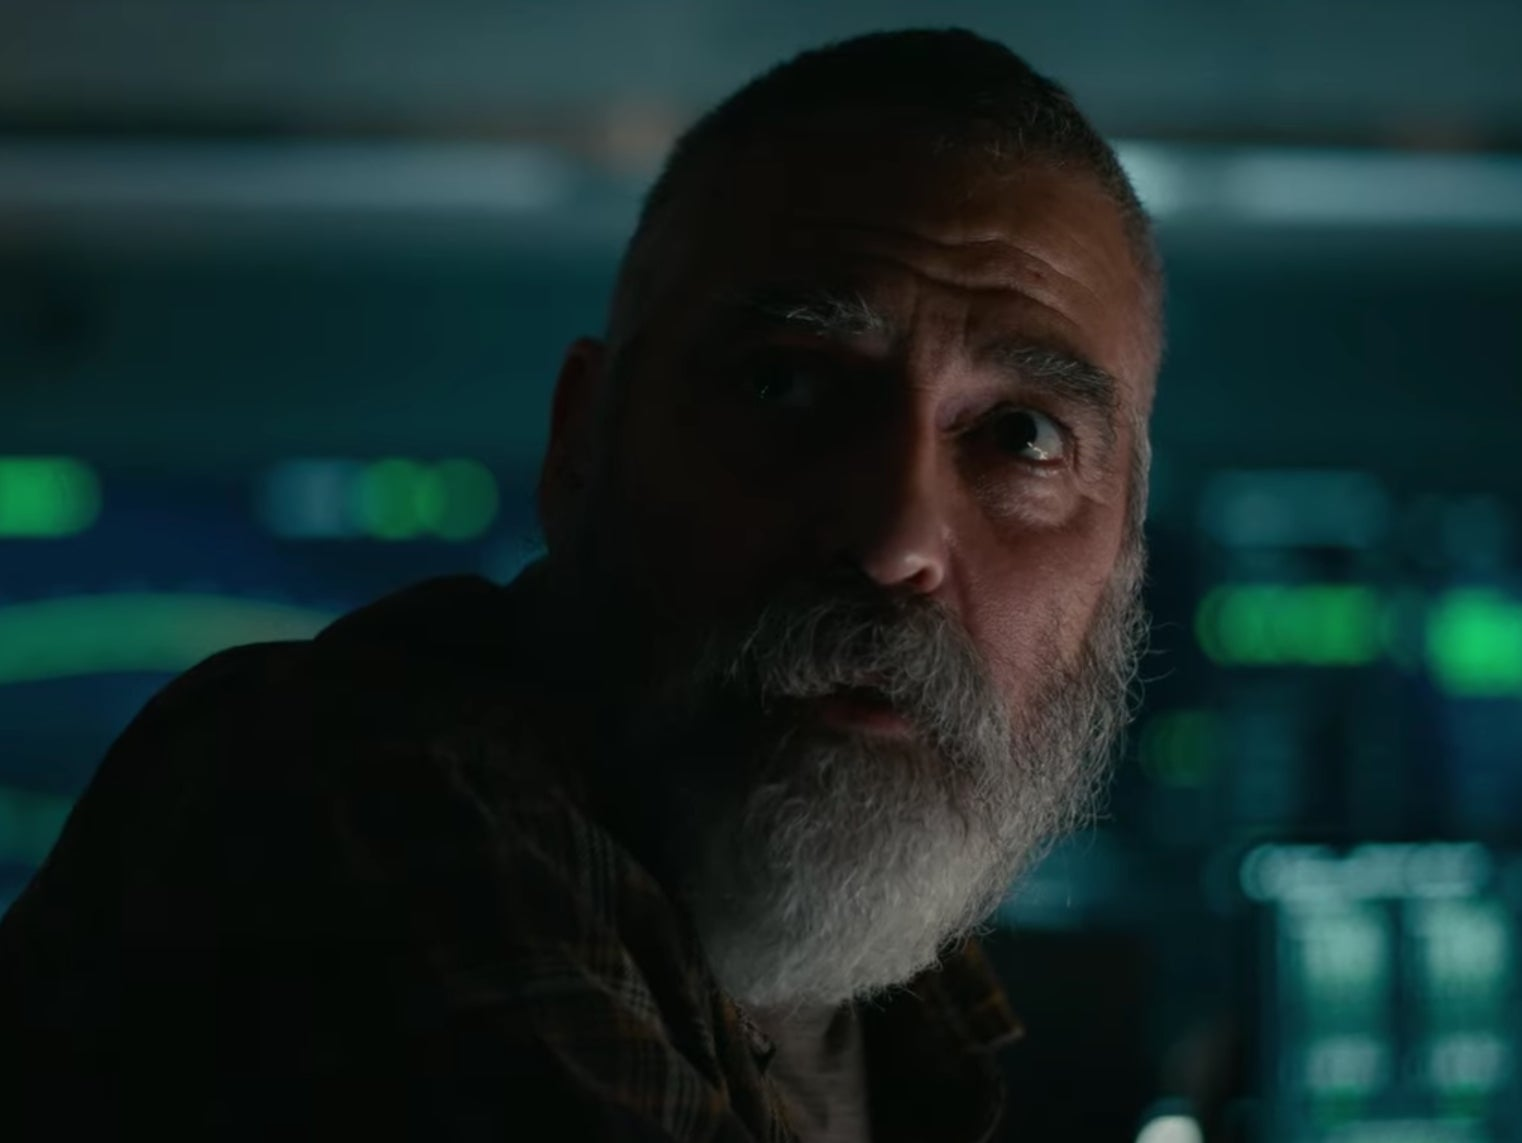 First trailer for Netflix's The Midnight Sky starring George Clooney is released